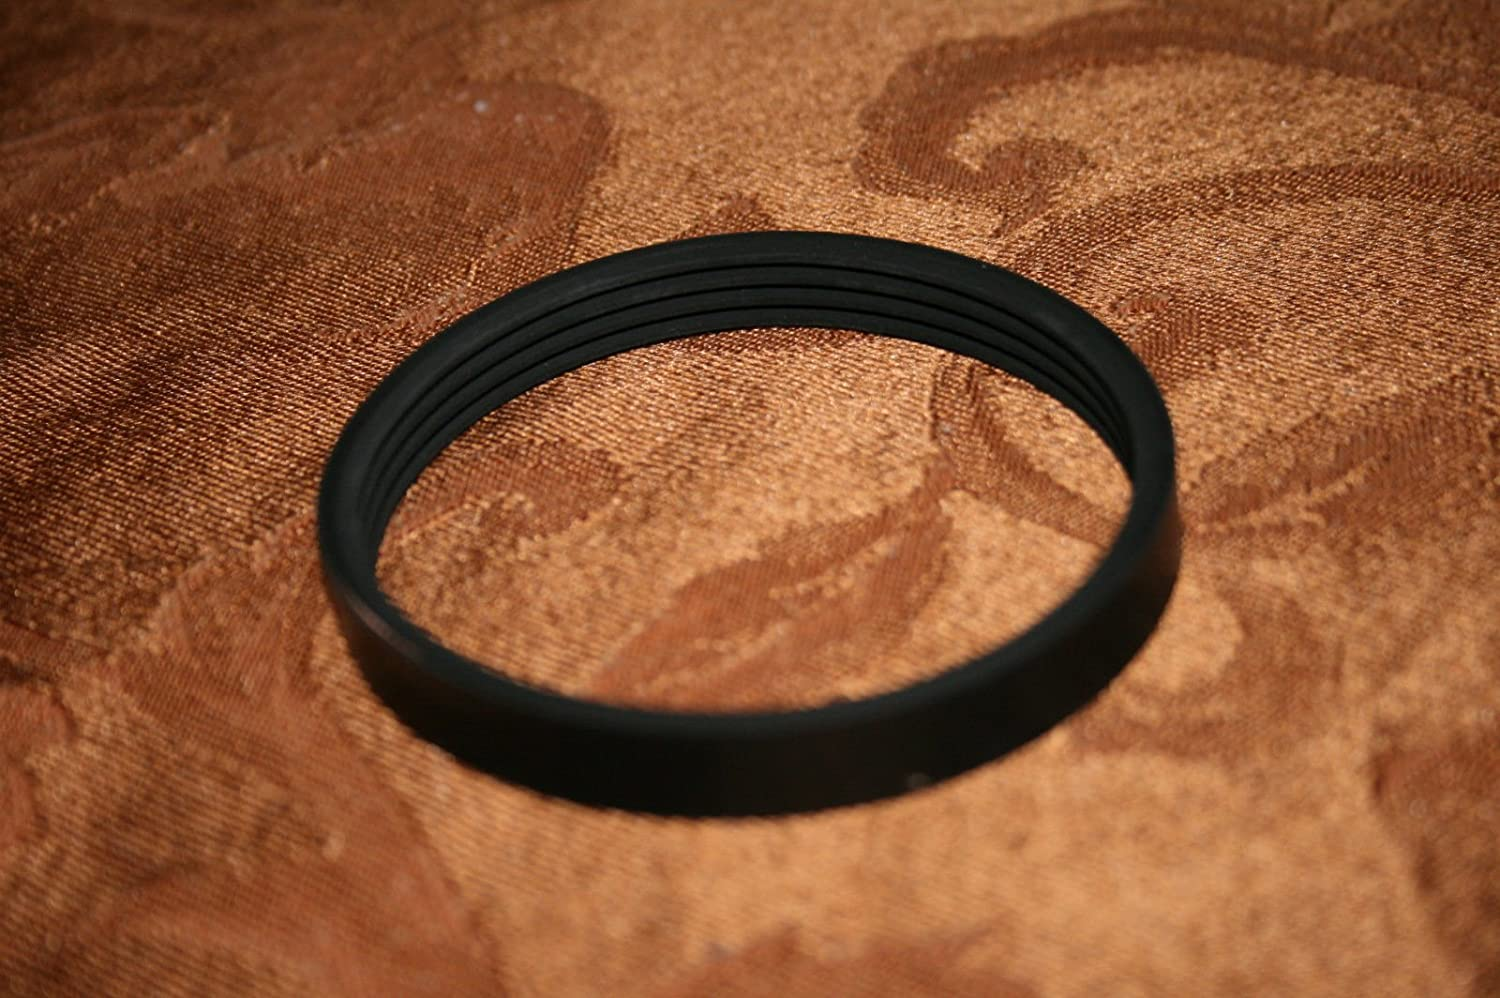 NEW DRIVE BELT MADE IN USA FOR GMC RBS10 BAND SAW GLOBAL MACHINERY CO BAND SAW